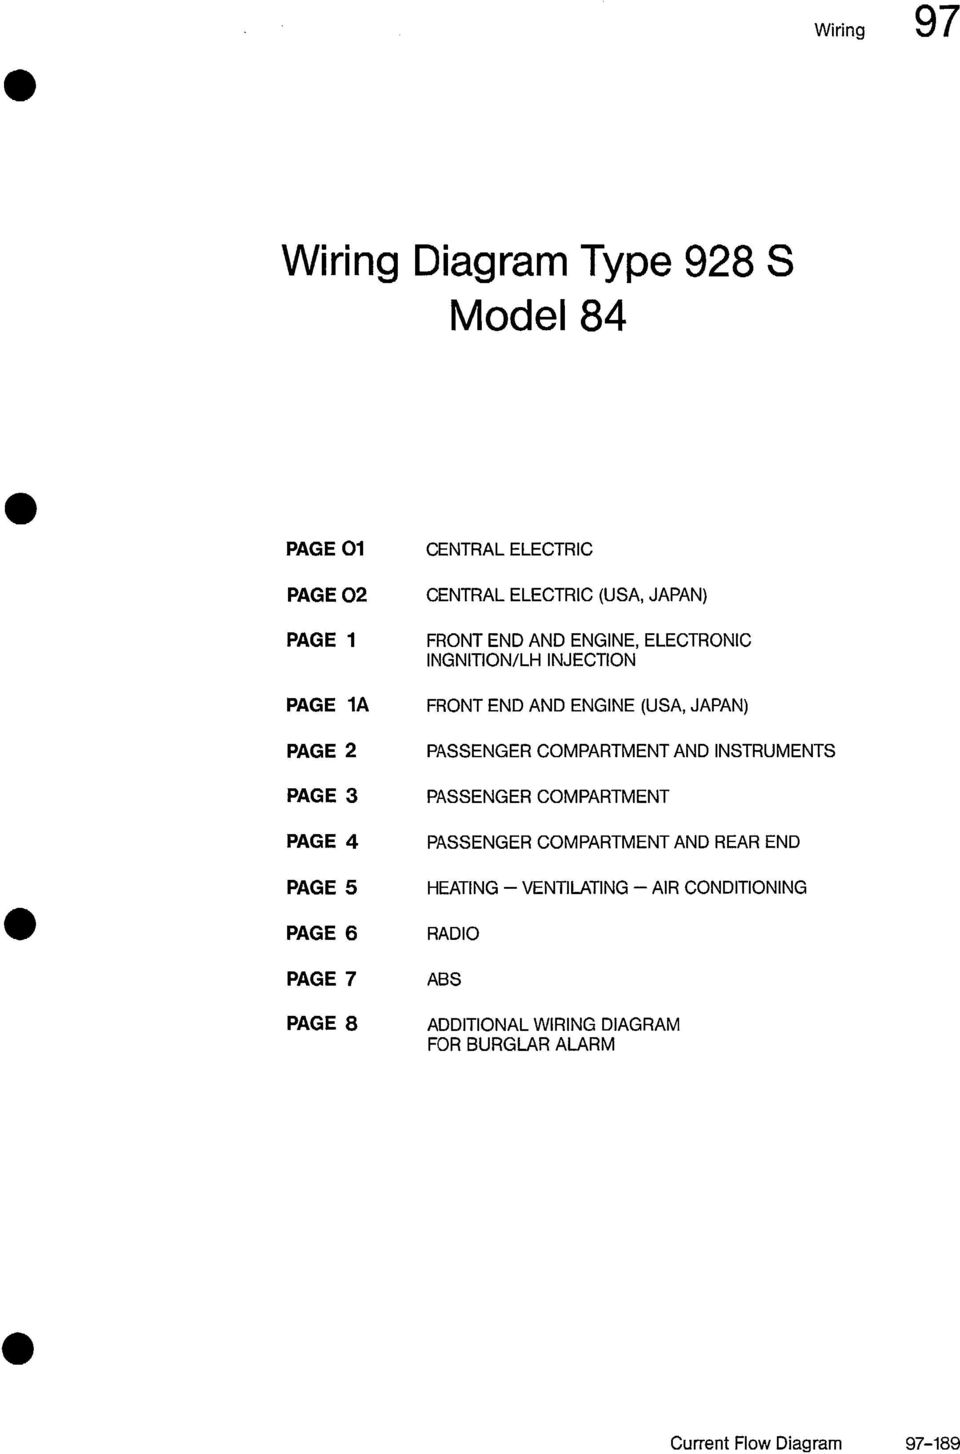 1998 Audi A4 1 8 L4 Gas Wiring Diagram Components On Diagram Fog Lamp